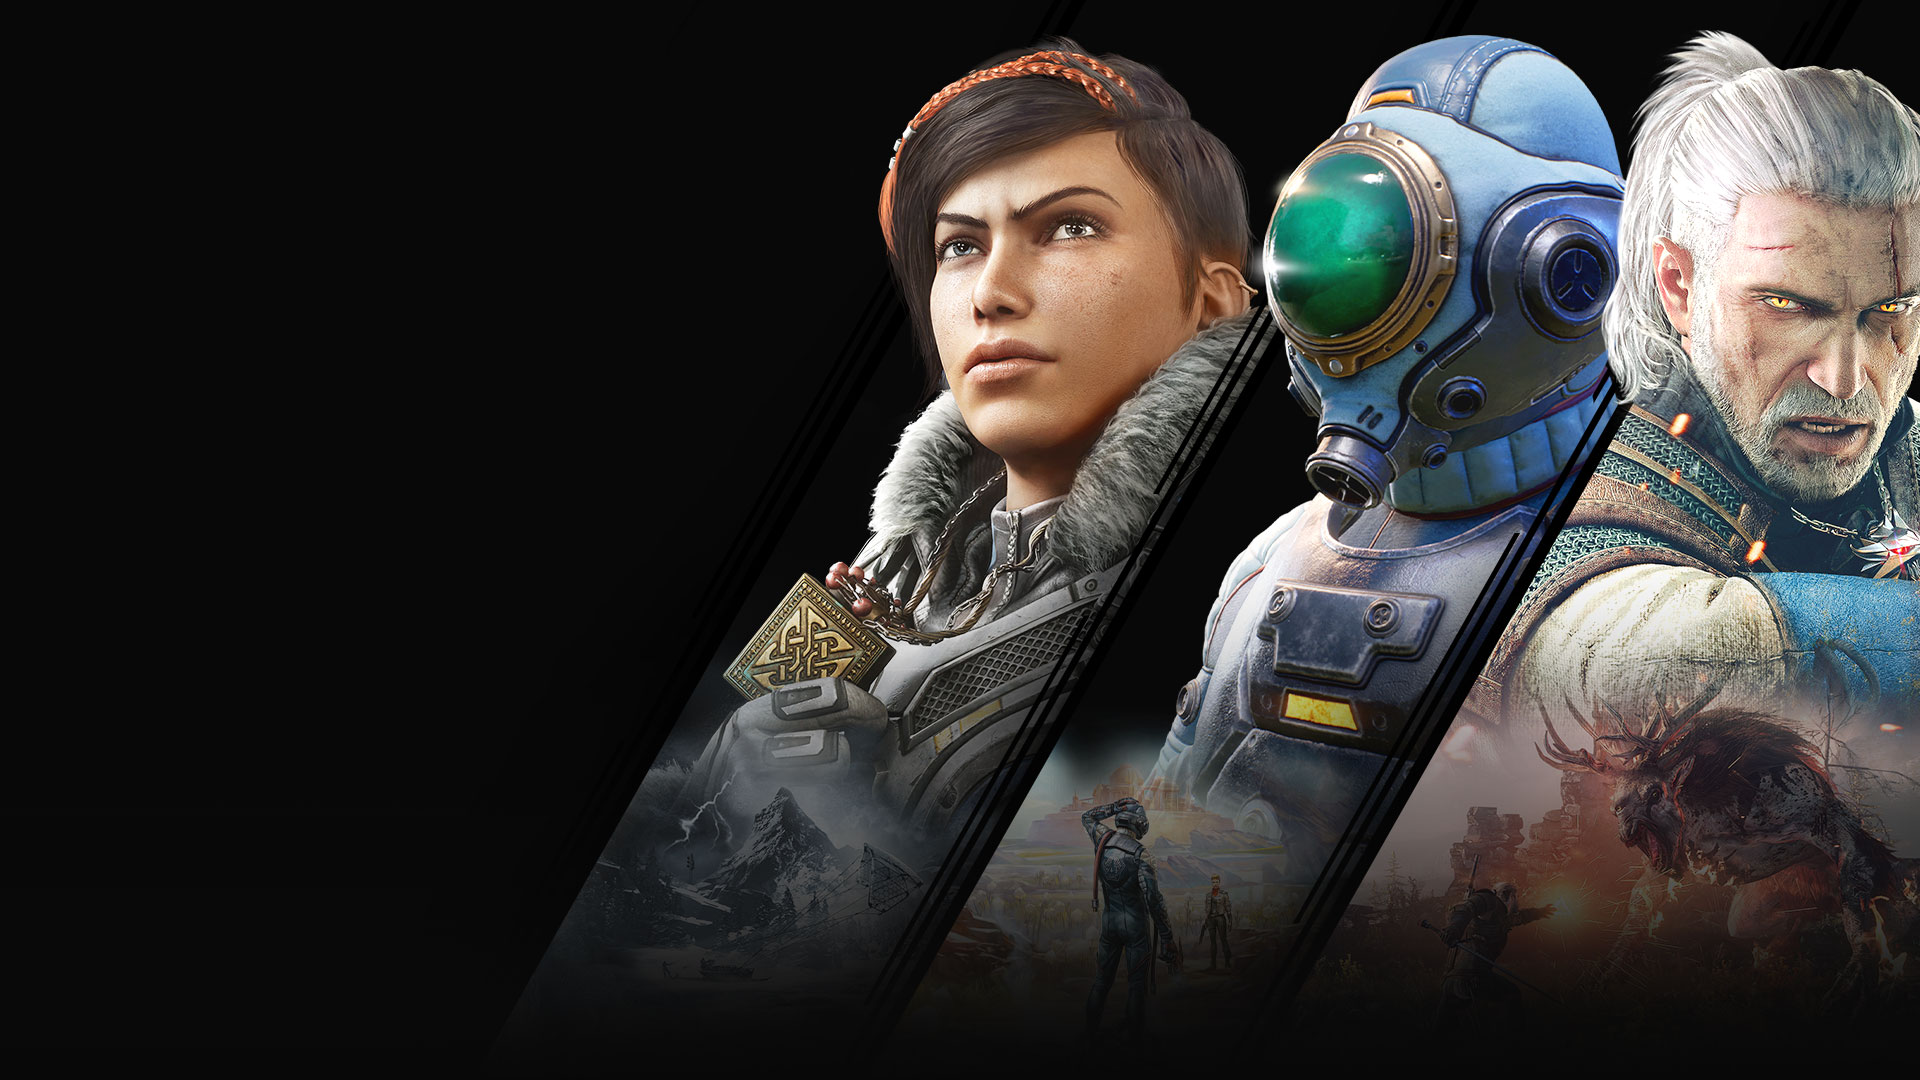 Un collage de juegos disponibles con Xbox Game Pass que incluye Gears 5, The Outer Worlds y The Witcher.